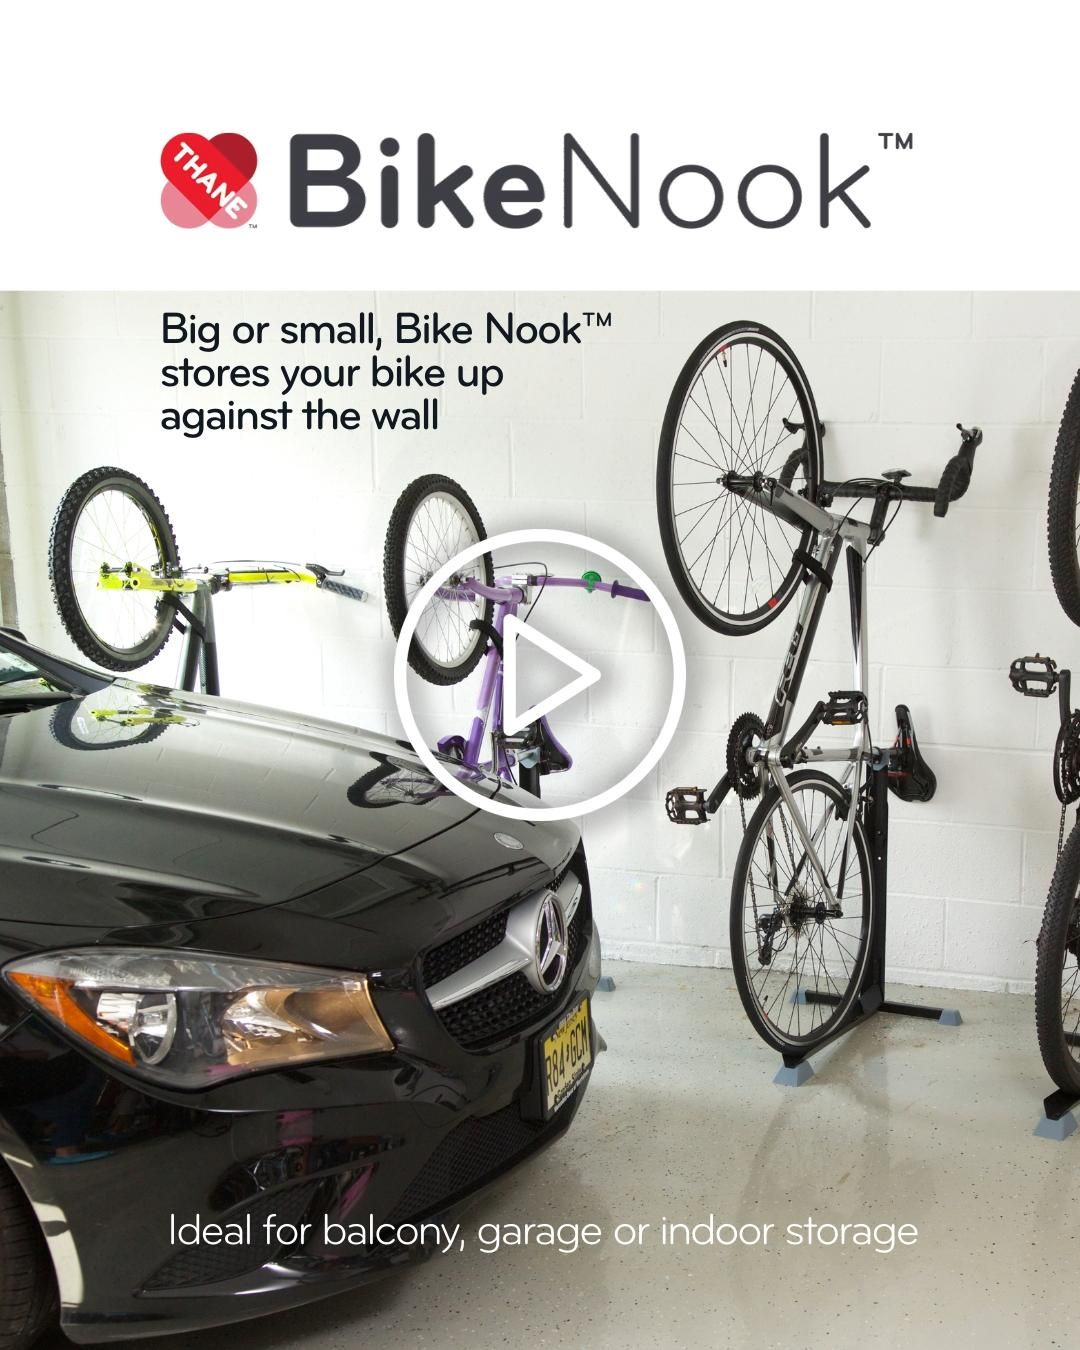 Bike Nook™ Bike Storage